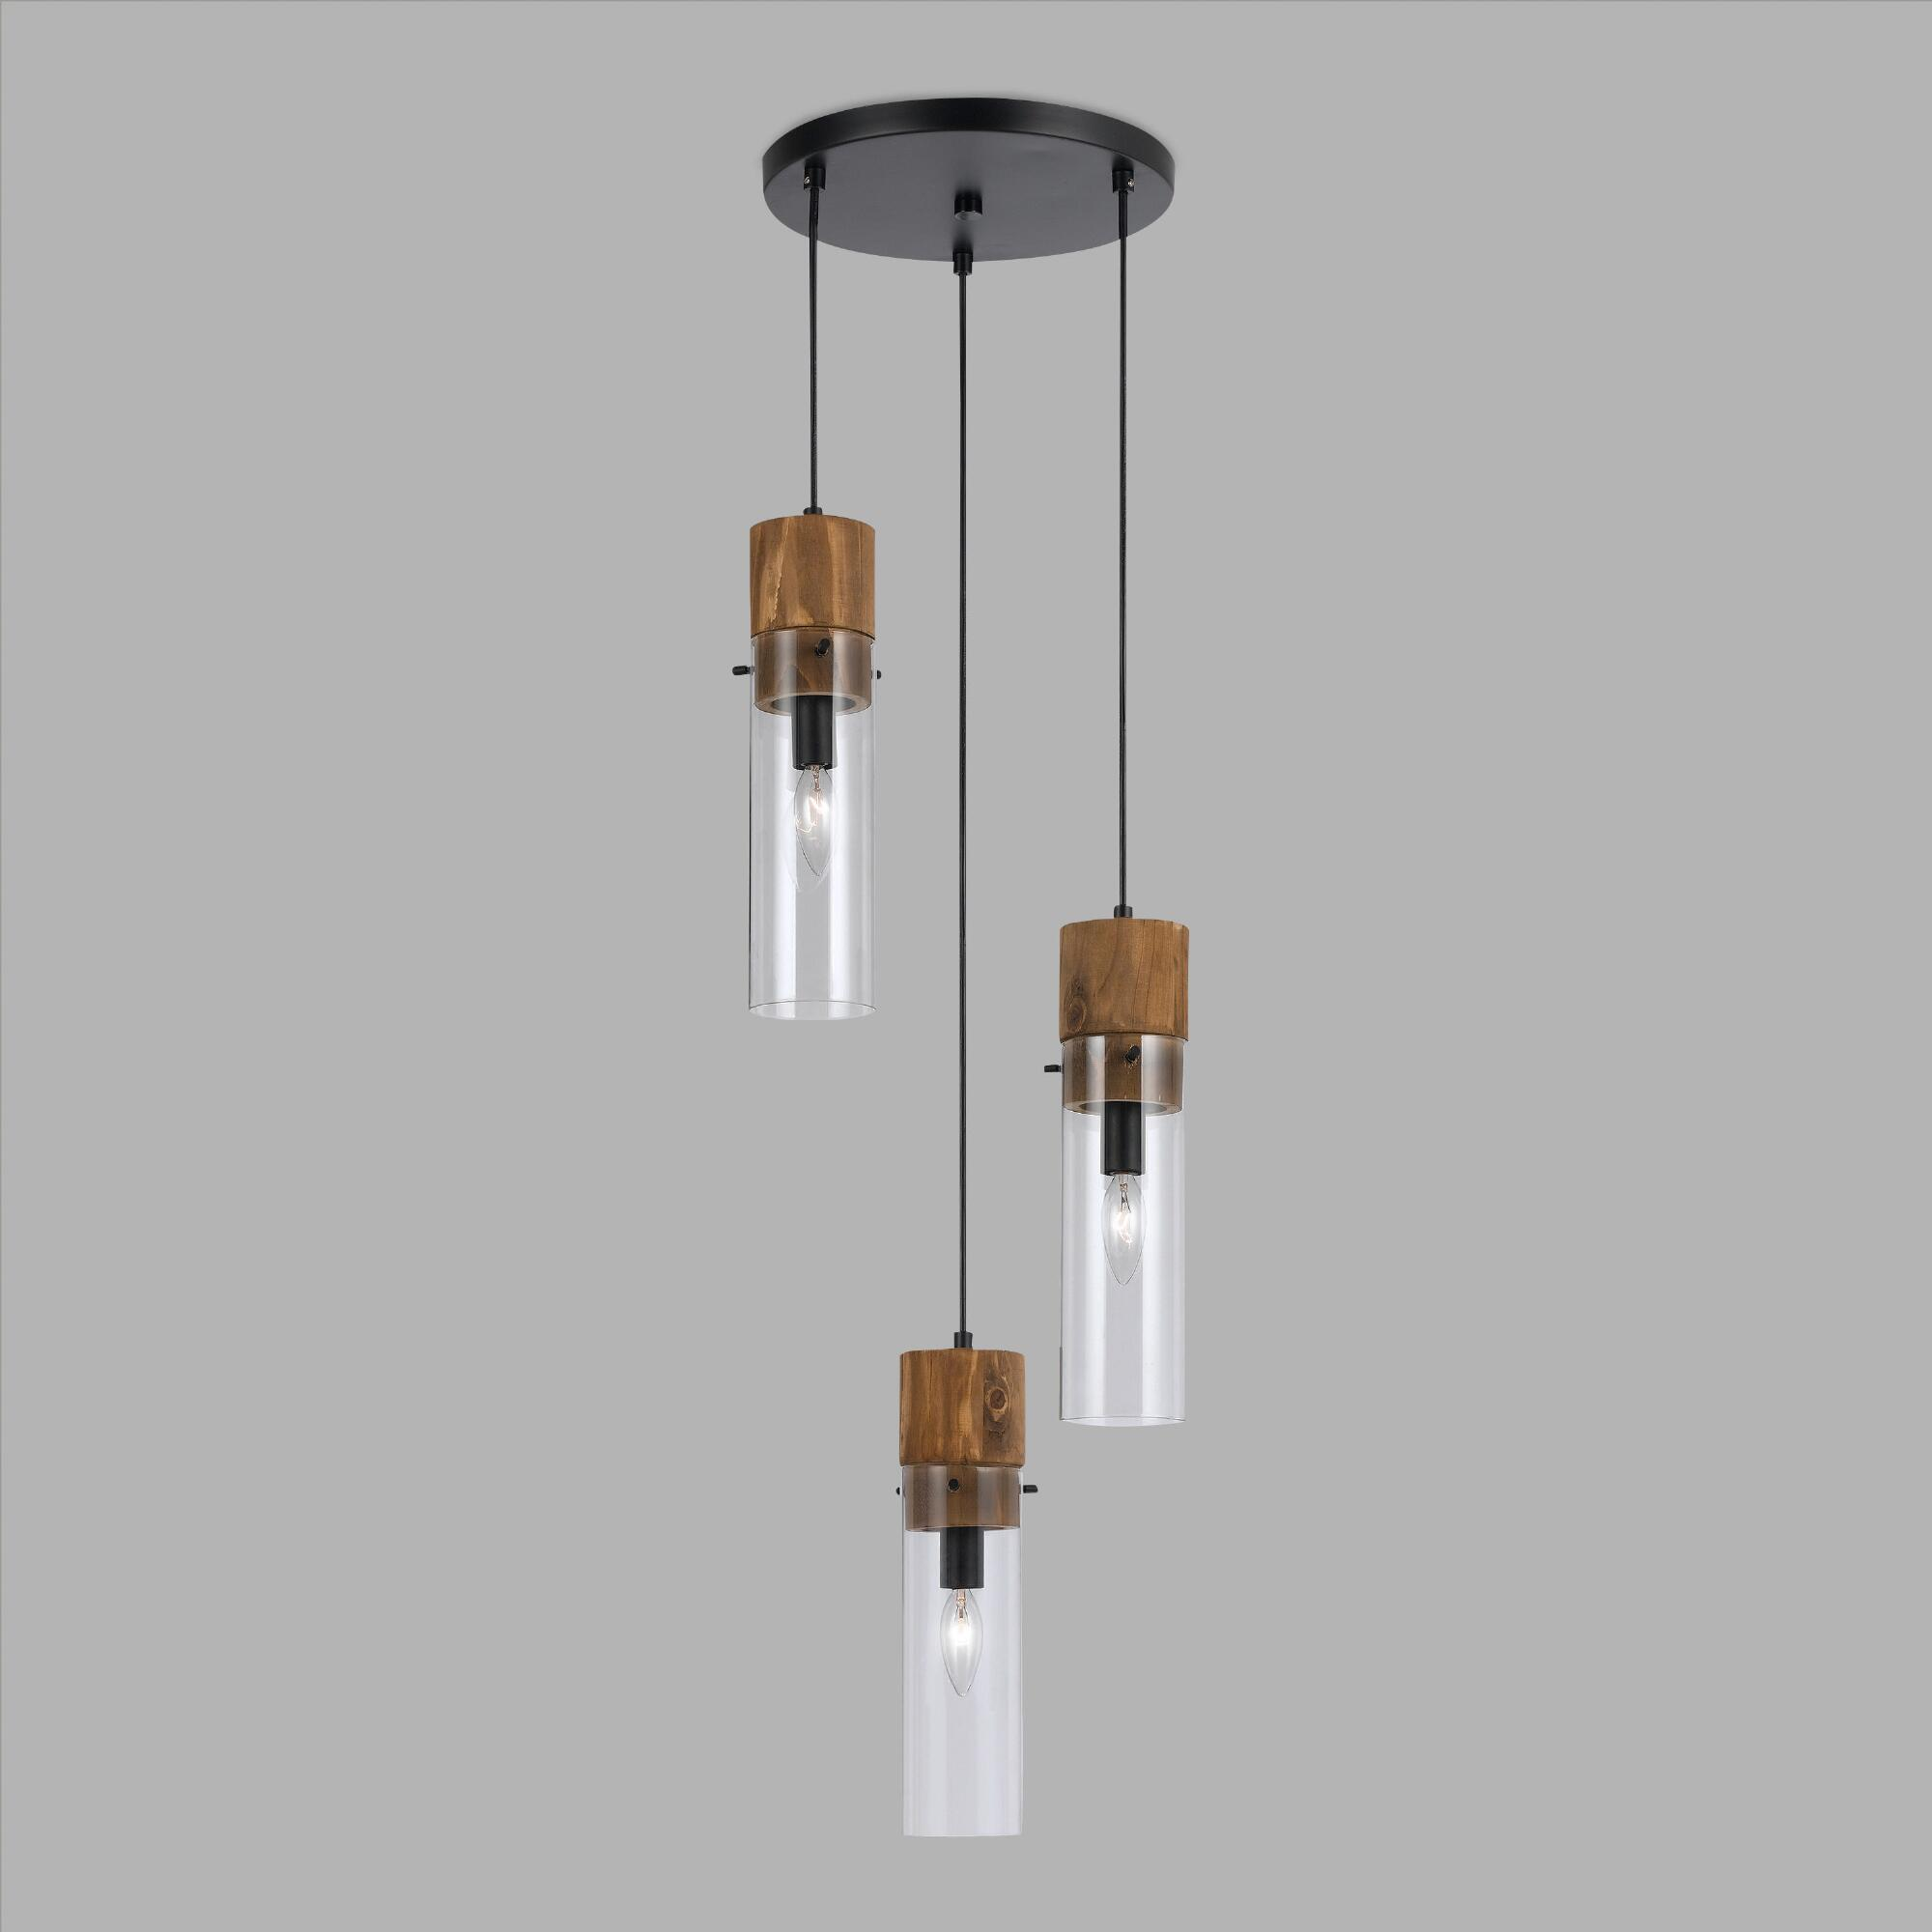 3 light pendant fixture